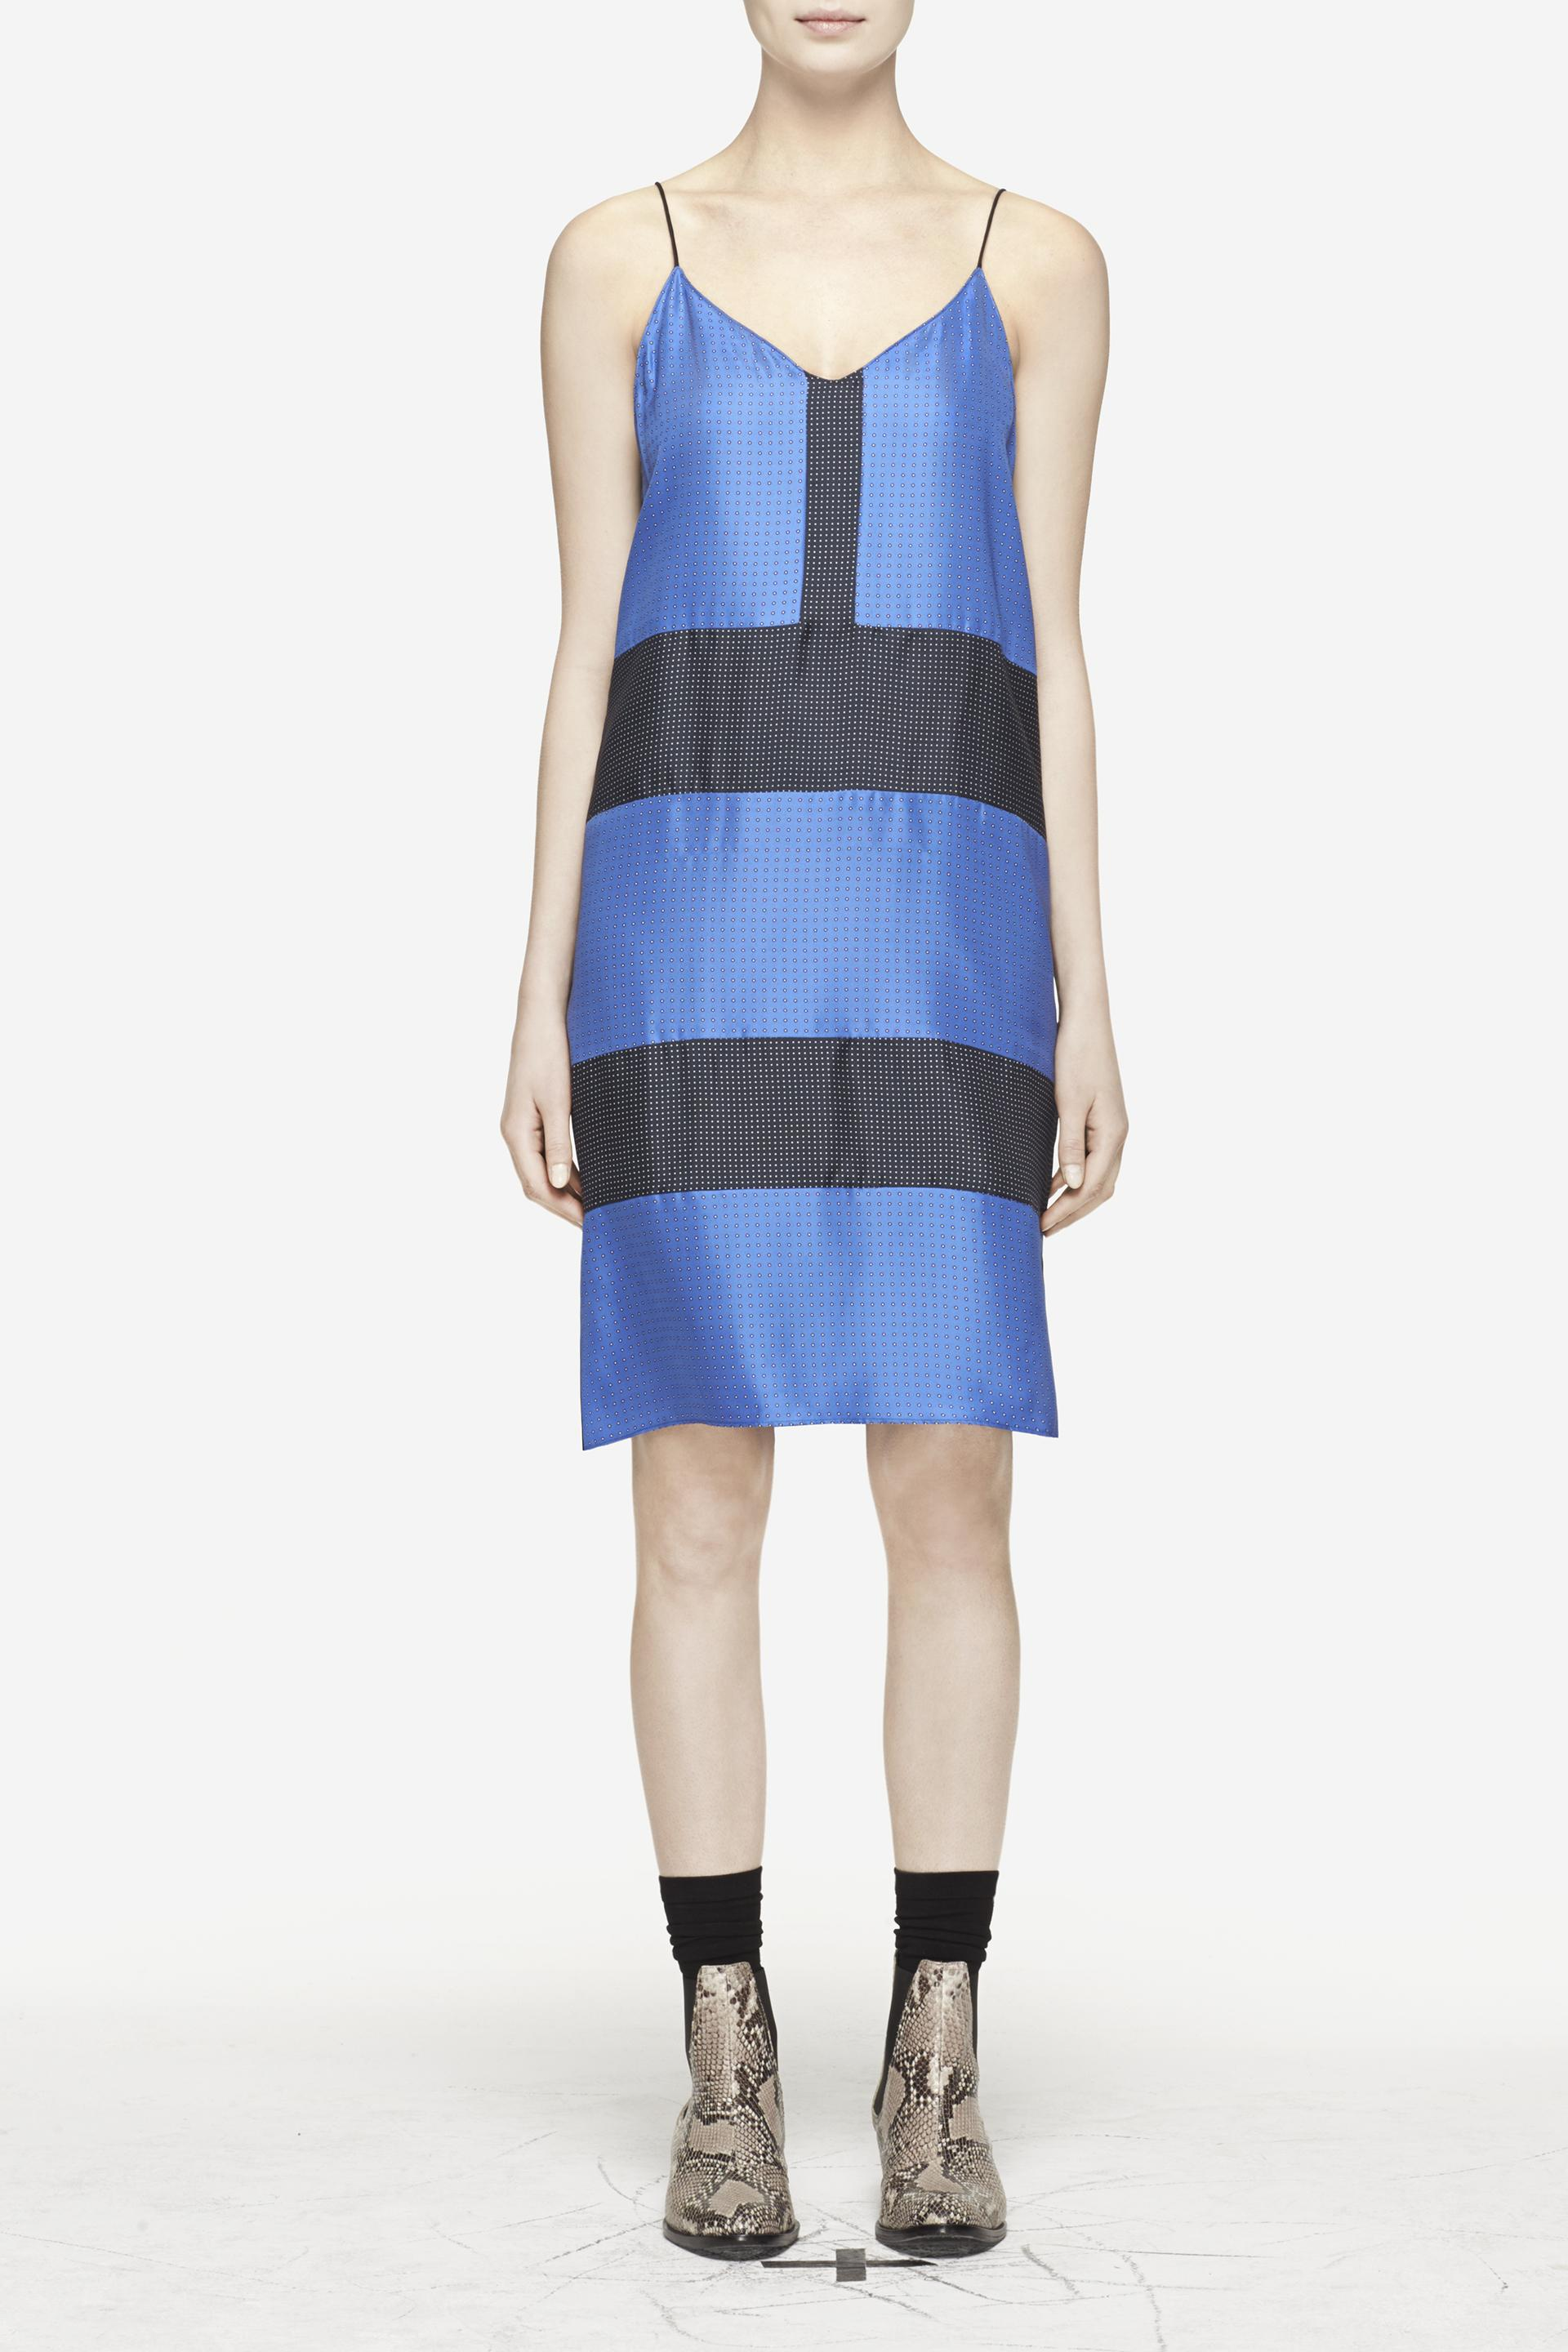 Really Cheap Price Rag & Bone Colorblock Silk Top Cheap Official Sast Cheap Online Free Shipping How Much Low Shipping Fee Sale Online xszXyZy1Fr